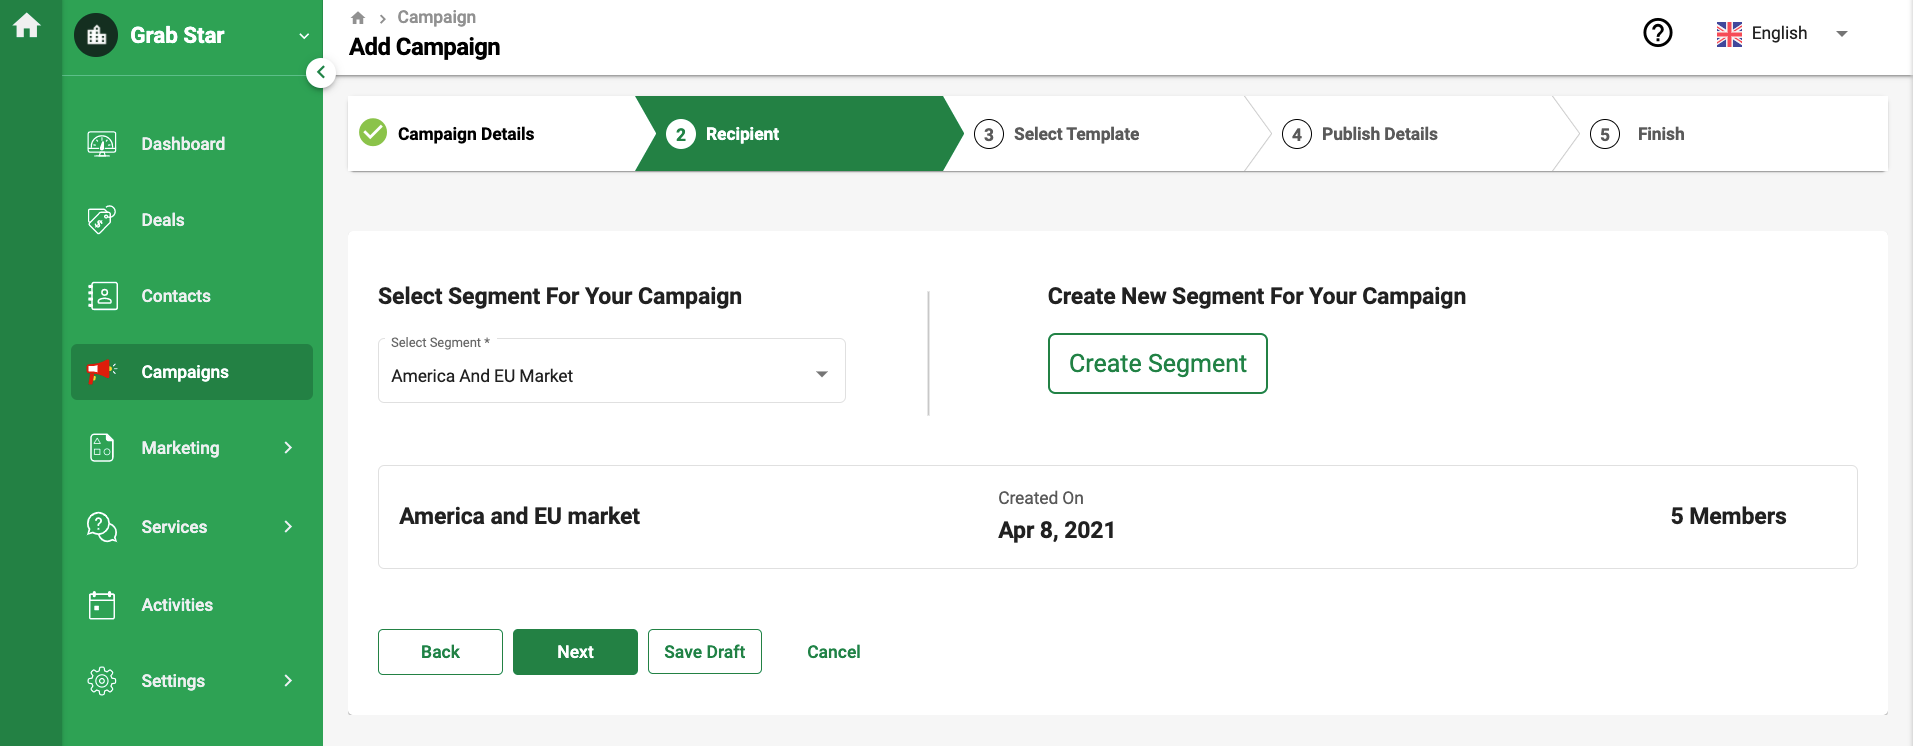 Select the right segment and click Next